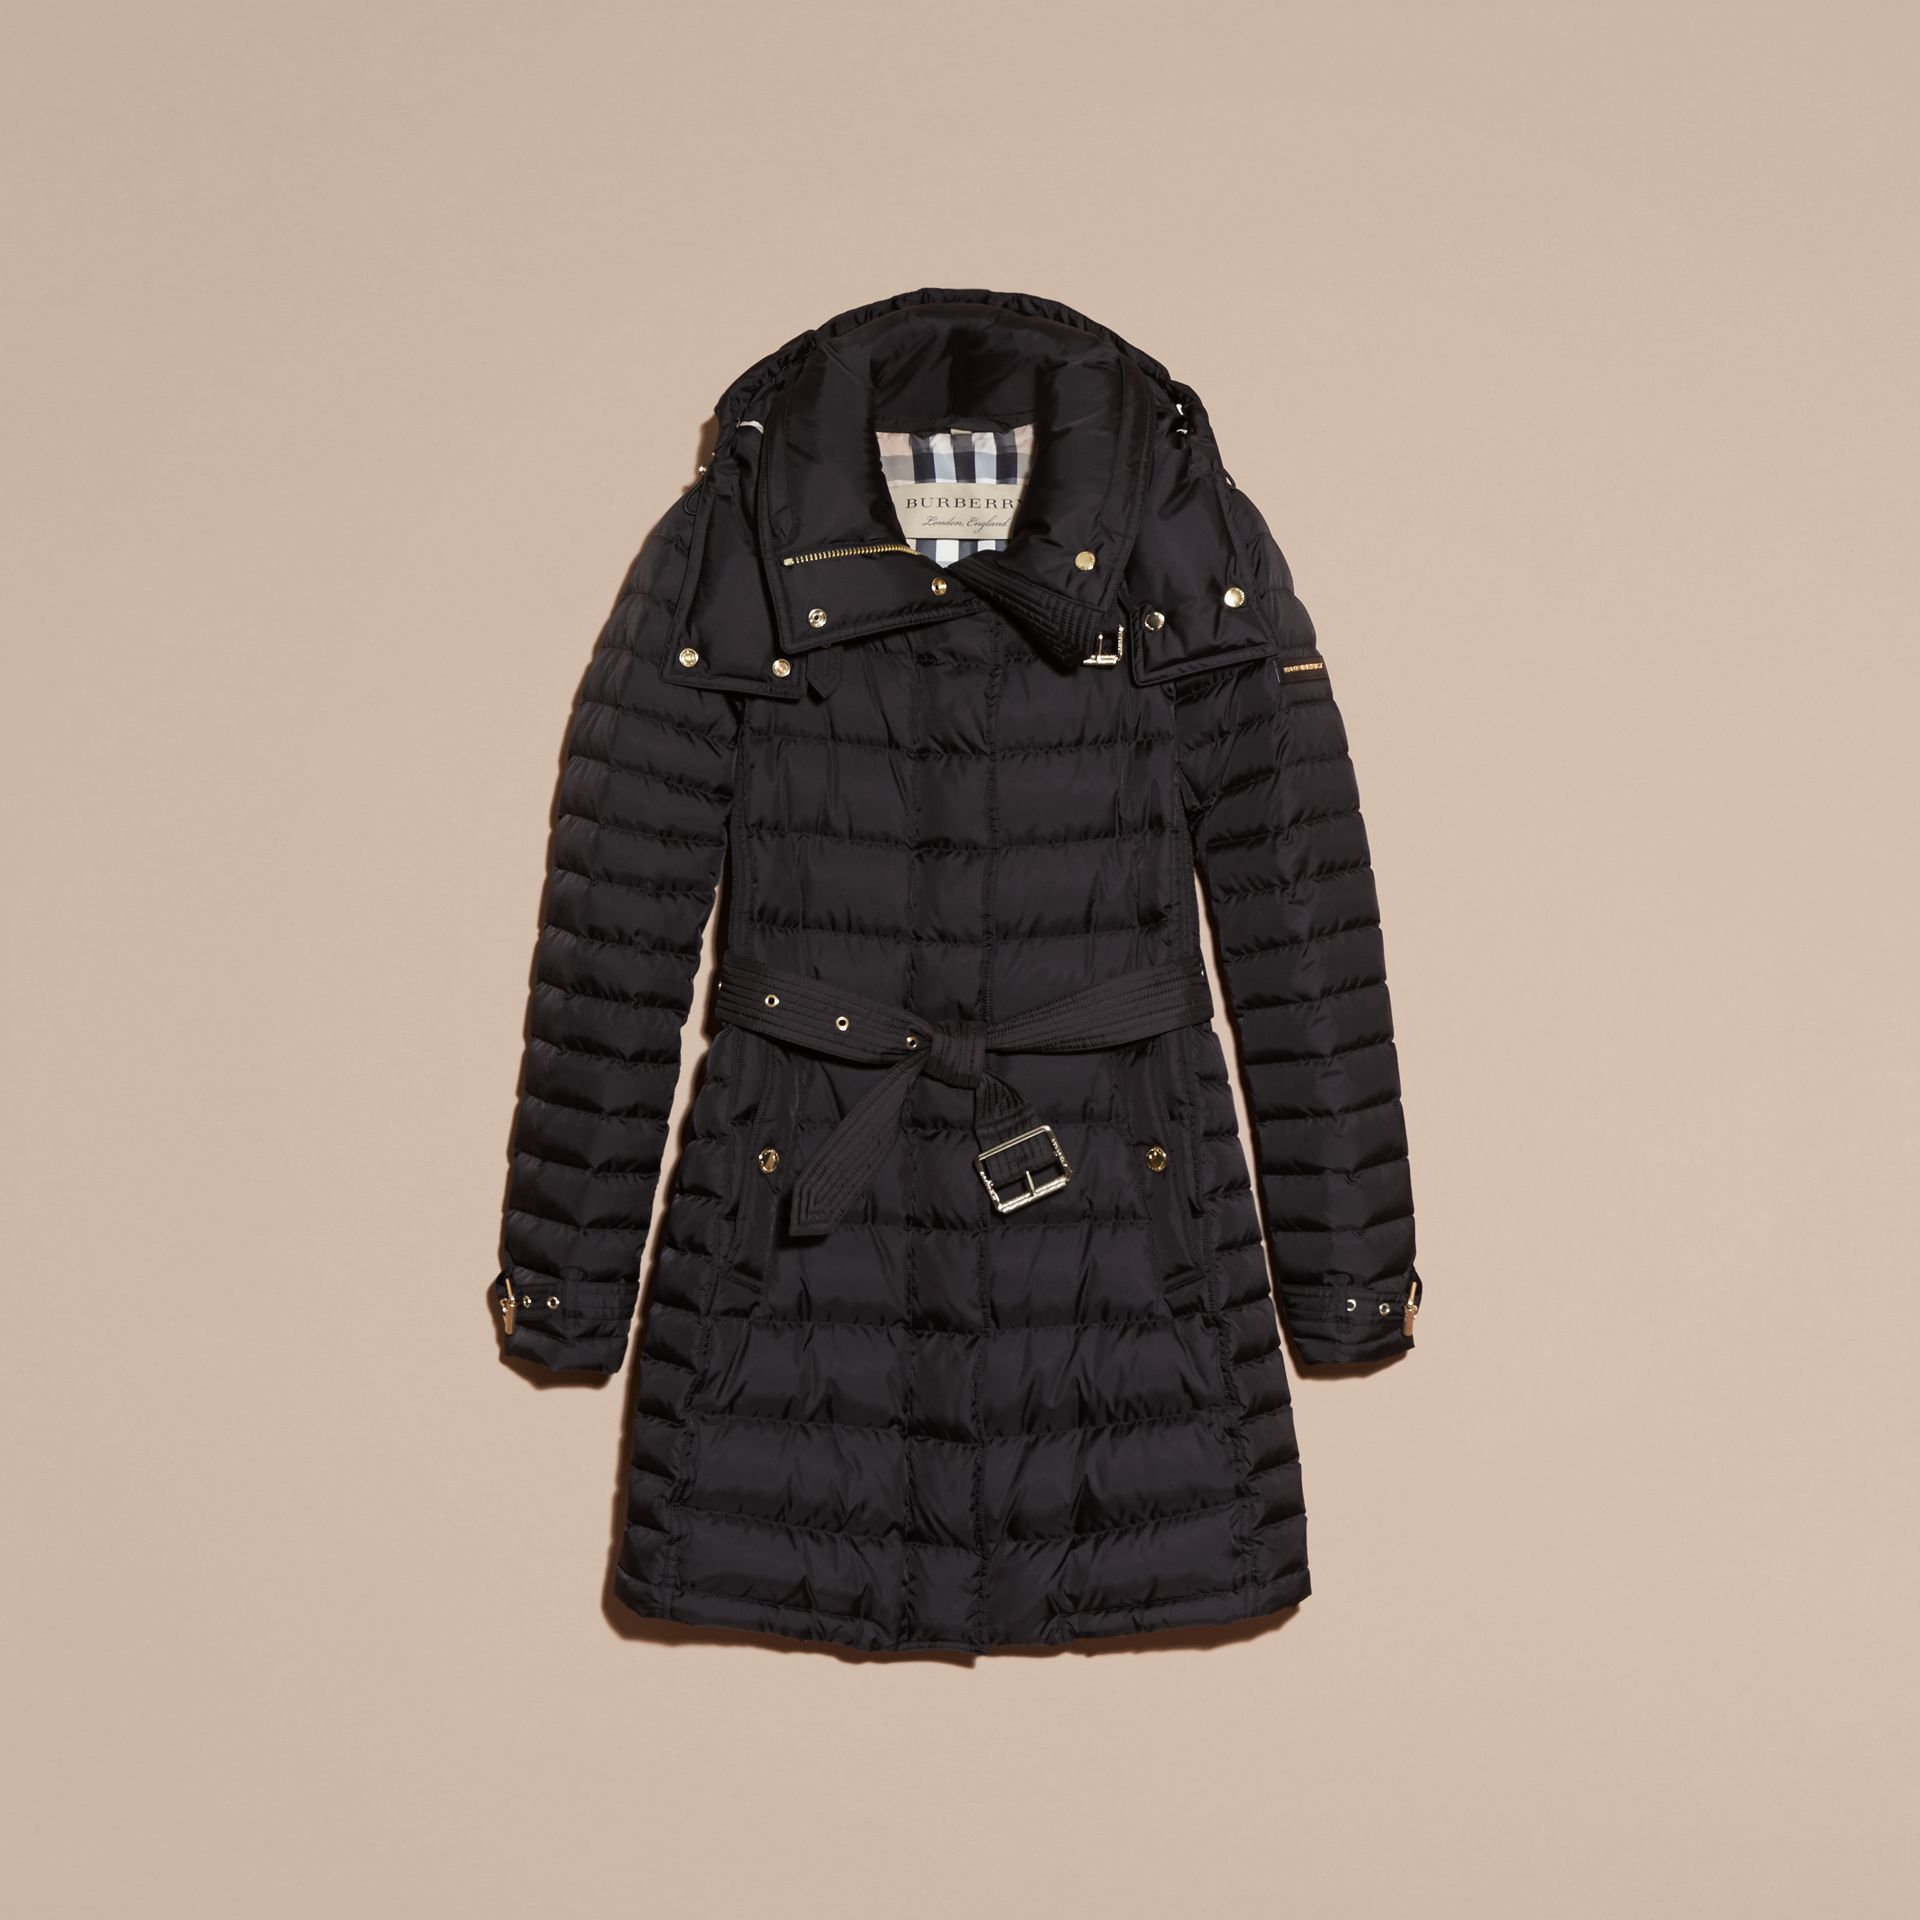 Down-filled Puffer Coat with Packaway Hood - Women | Burberry Canada - gallery image 4